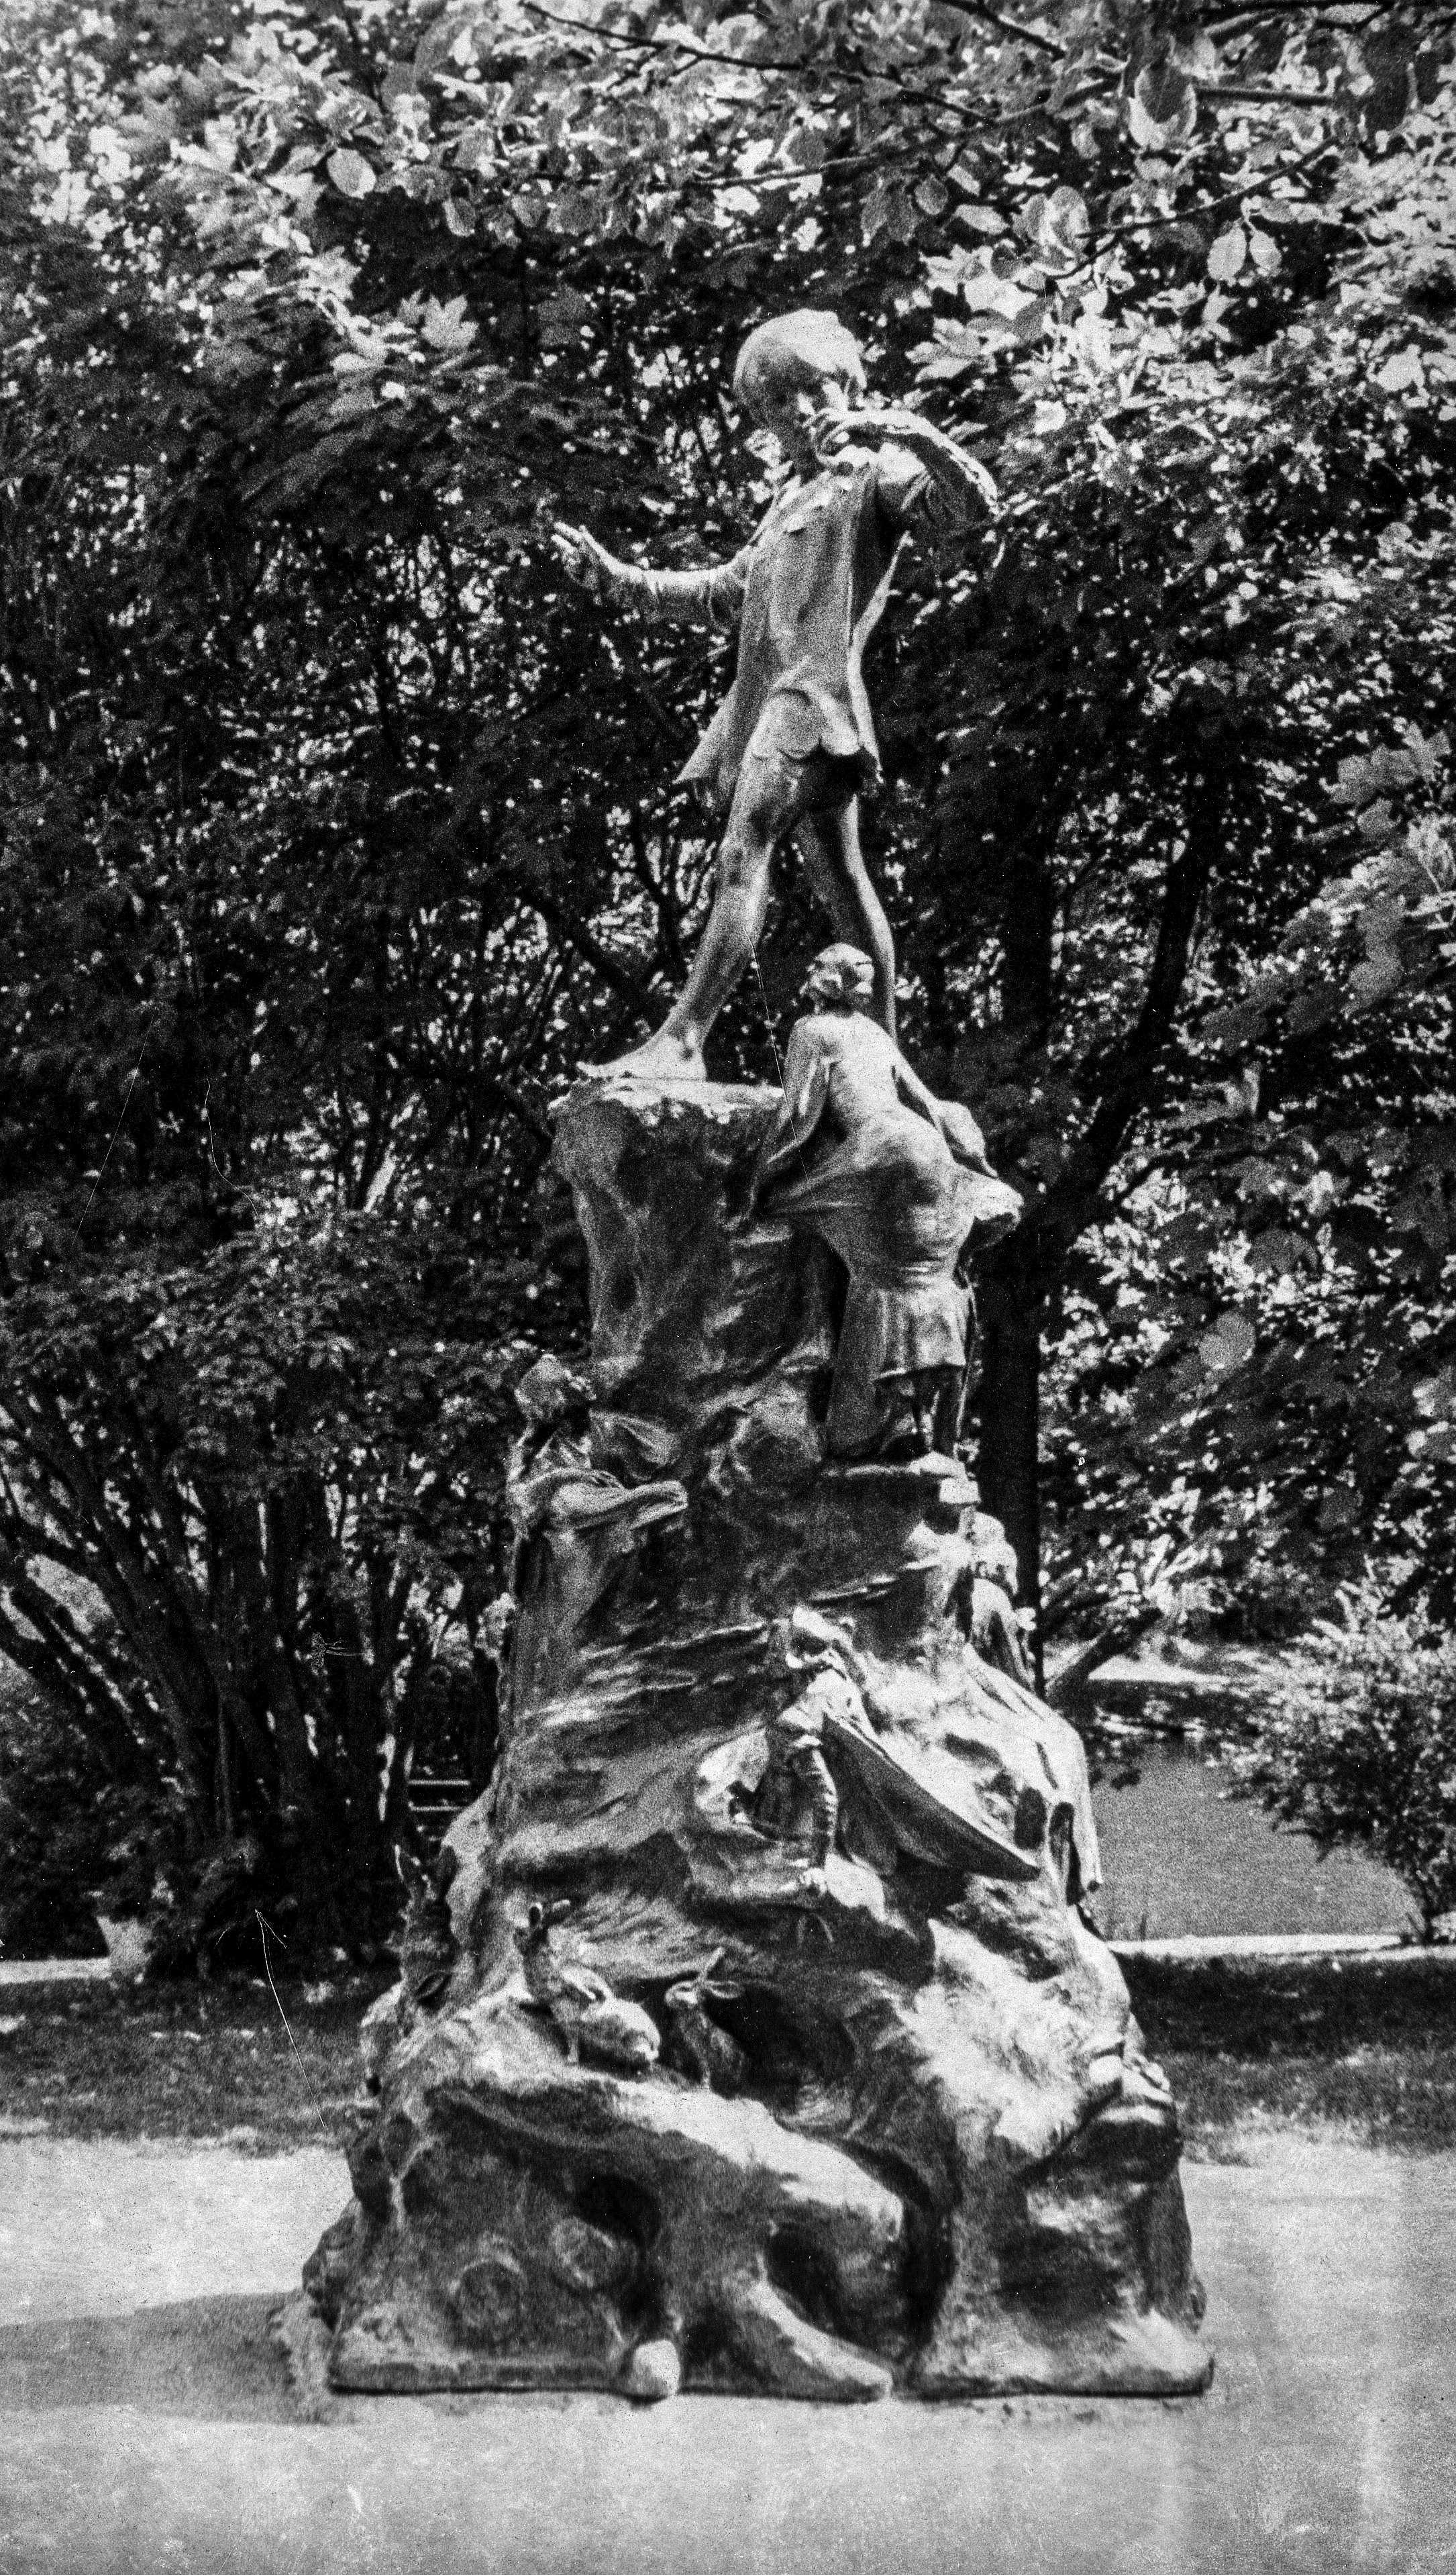 Black and white photograph of Peter Pan Statue. Tall statue with animals, people, and a boy standing on top.